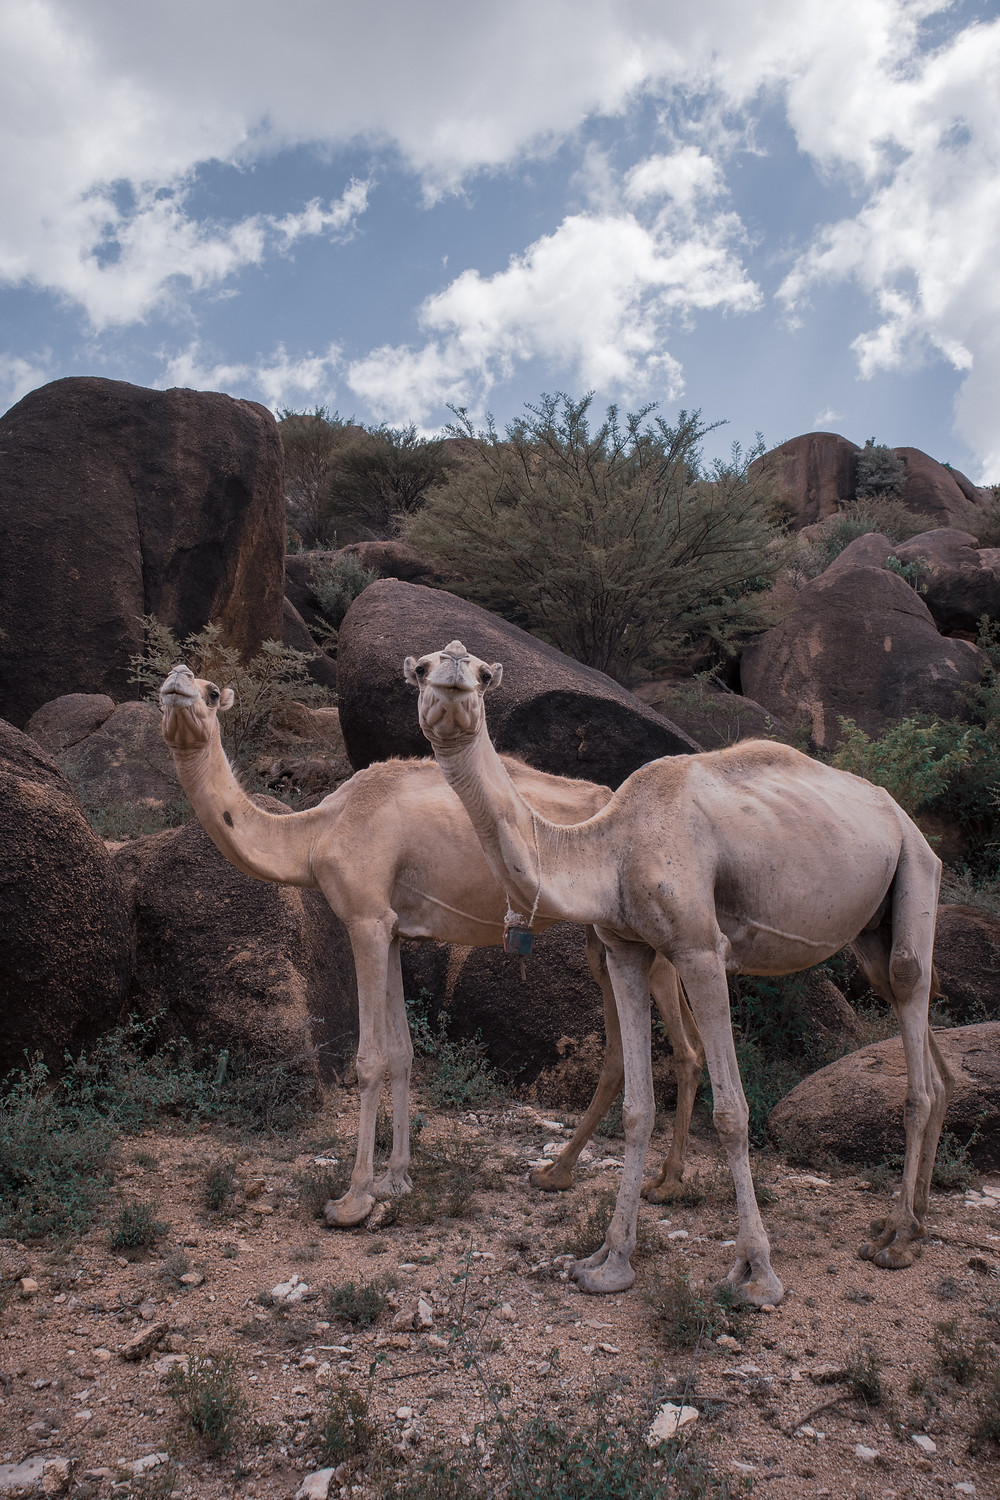 Camels in Somaliland